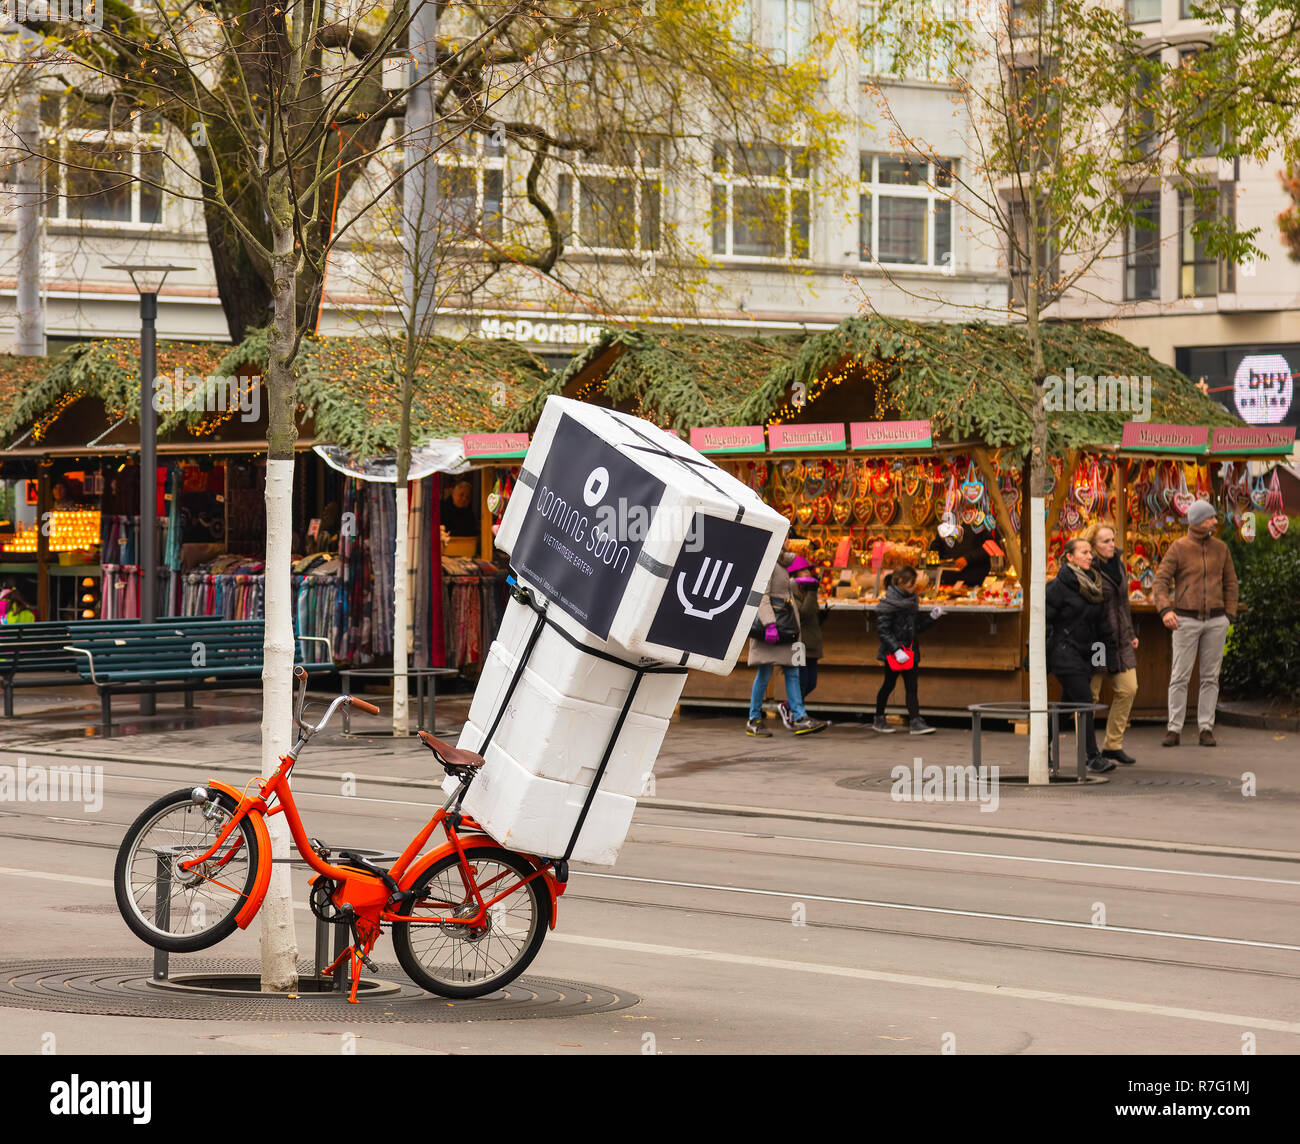 Zurich, Switzerland - December 6, 2015: a bicycle used for advertisement on Bahnhofstrasse street in the city of Zurich, people and Christmas market k - Stock Image